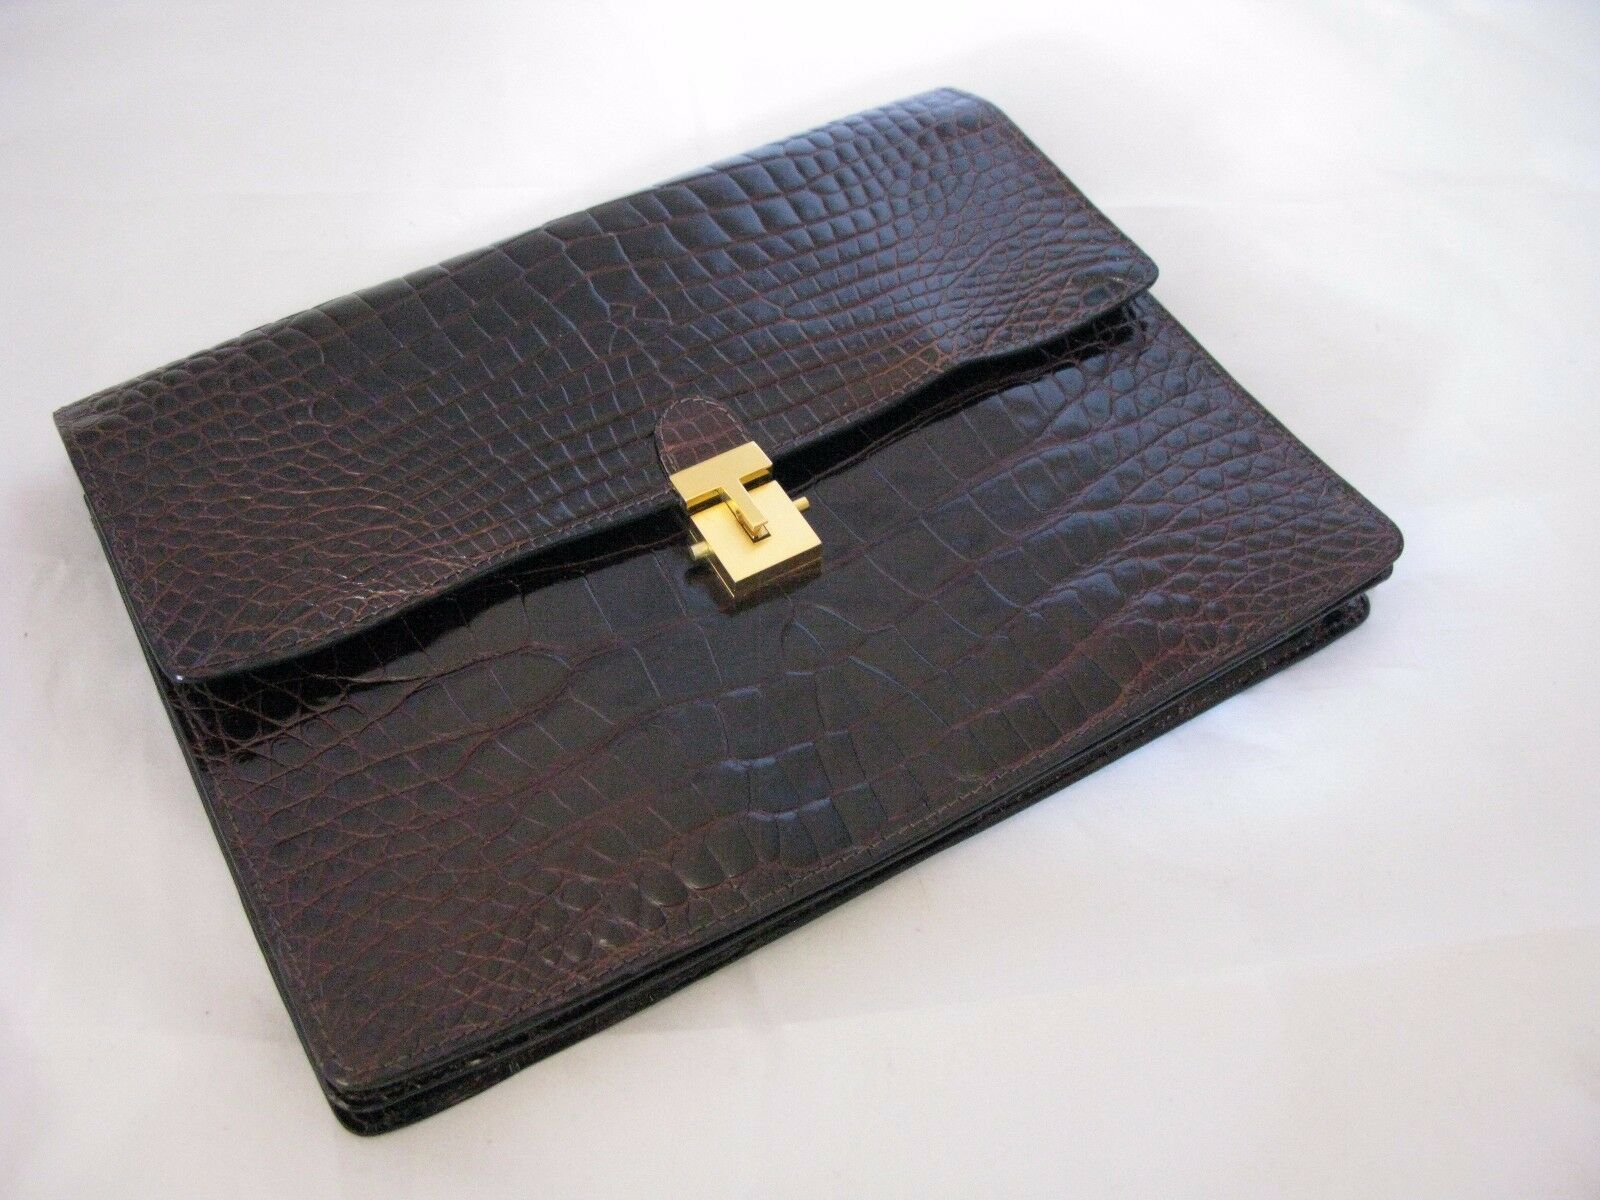 BIJAN Beverly Hills - Vintage 1980s Genuine Crocodile Clutch Handbag - Gorgeous!